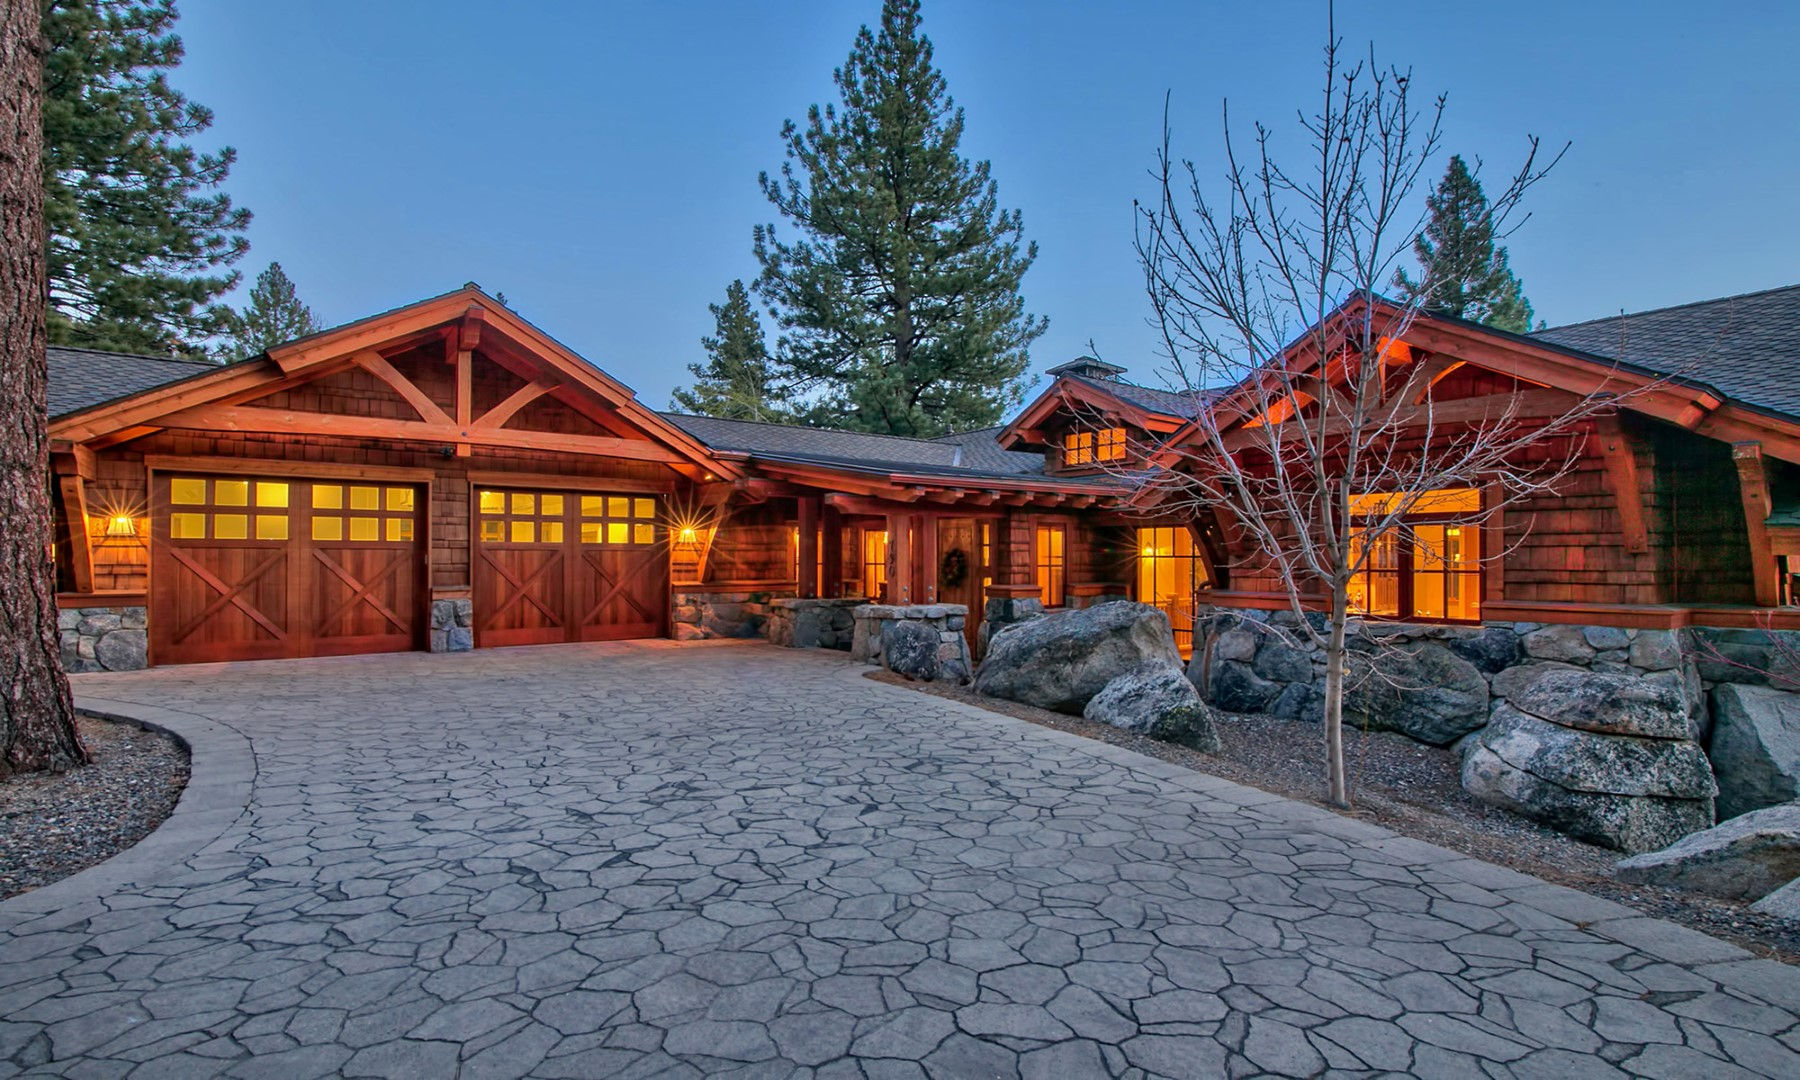 Single Family Home for Active at 790 Fairview Boulevard Incline Village, Nevada 89451 United States